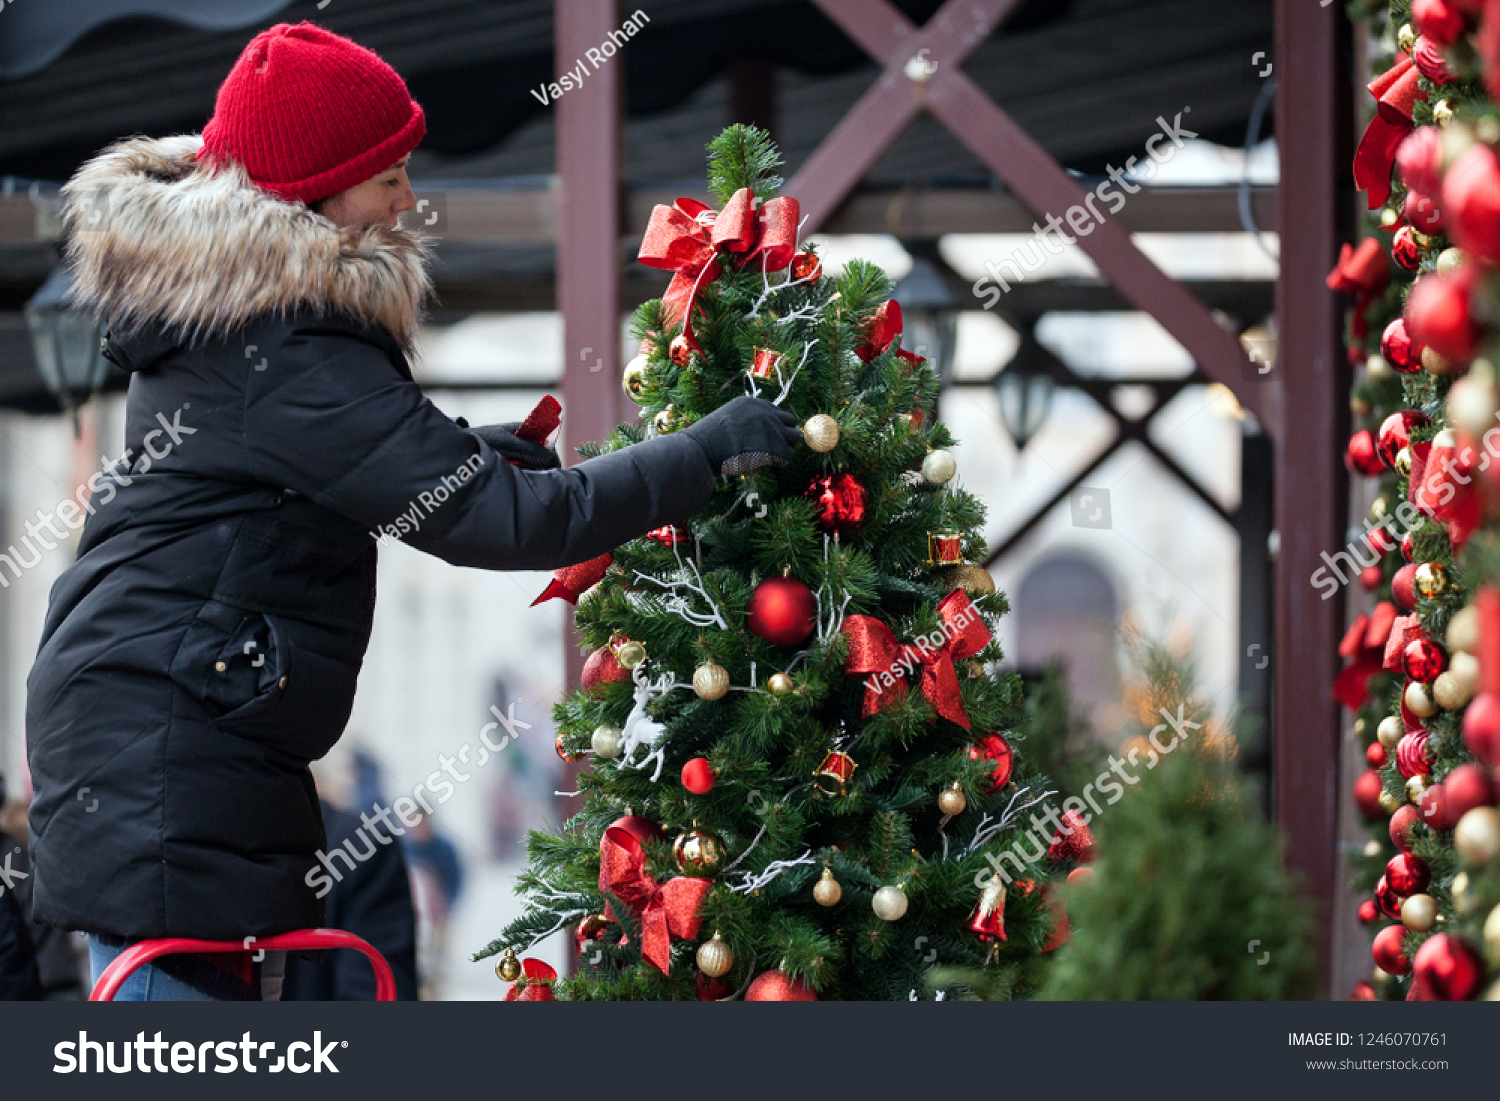 Decorating Christmas Trees Outside.Woman Decorating Christmas Tree Outside Outdoor Stock Photo